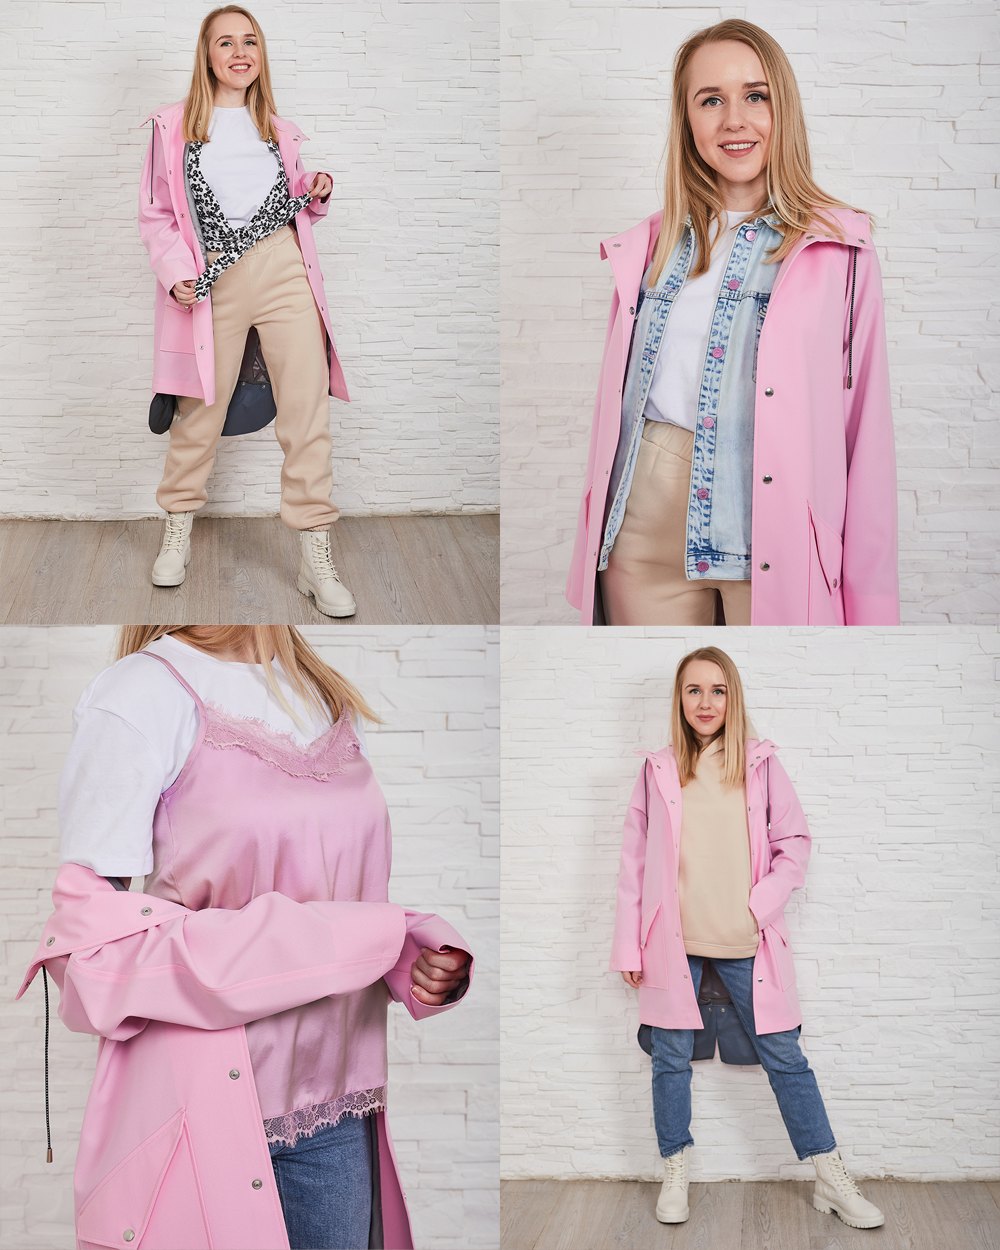 spring capsule with a cute pink raincoat